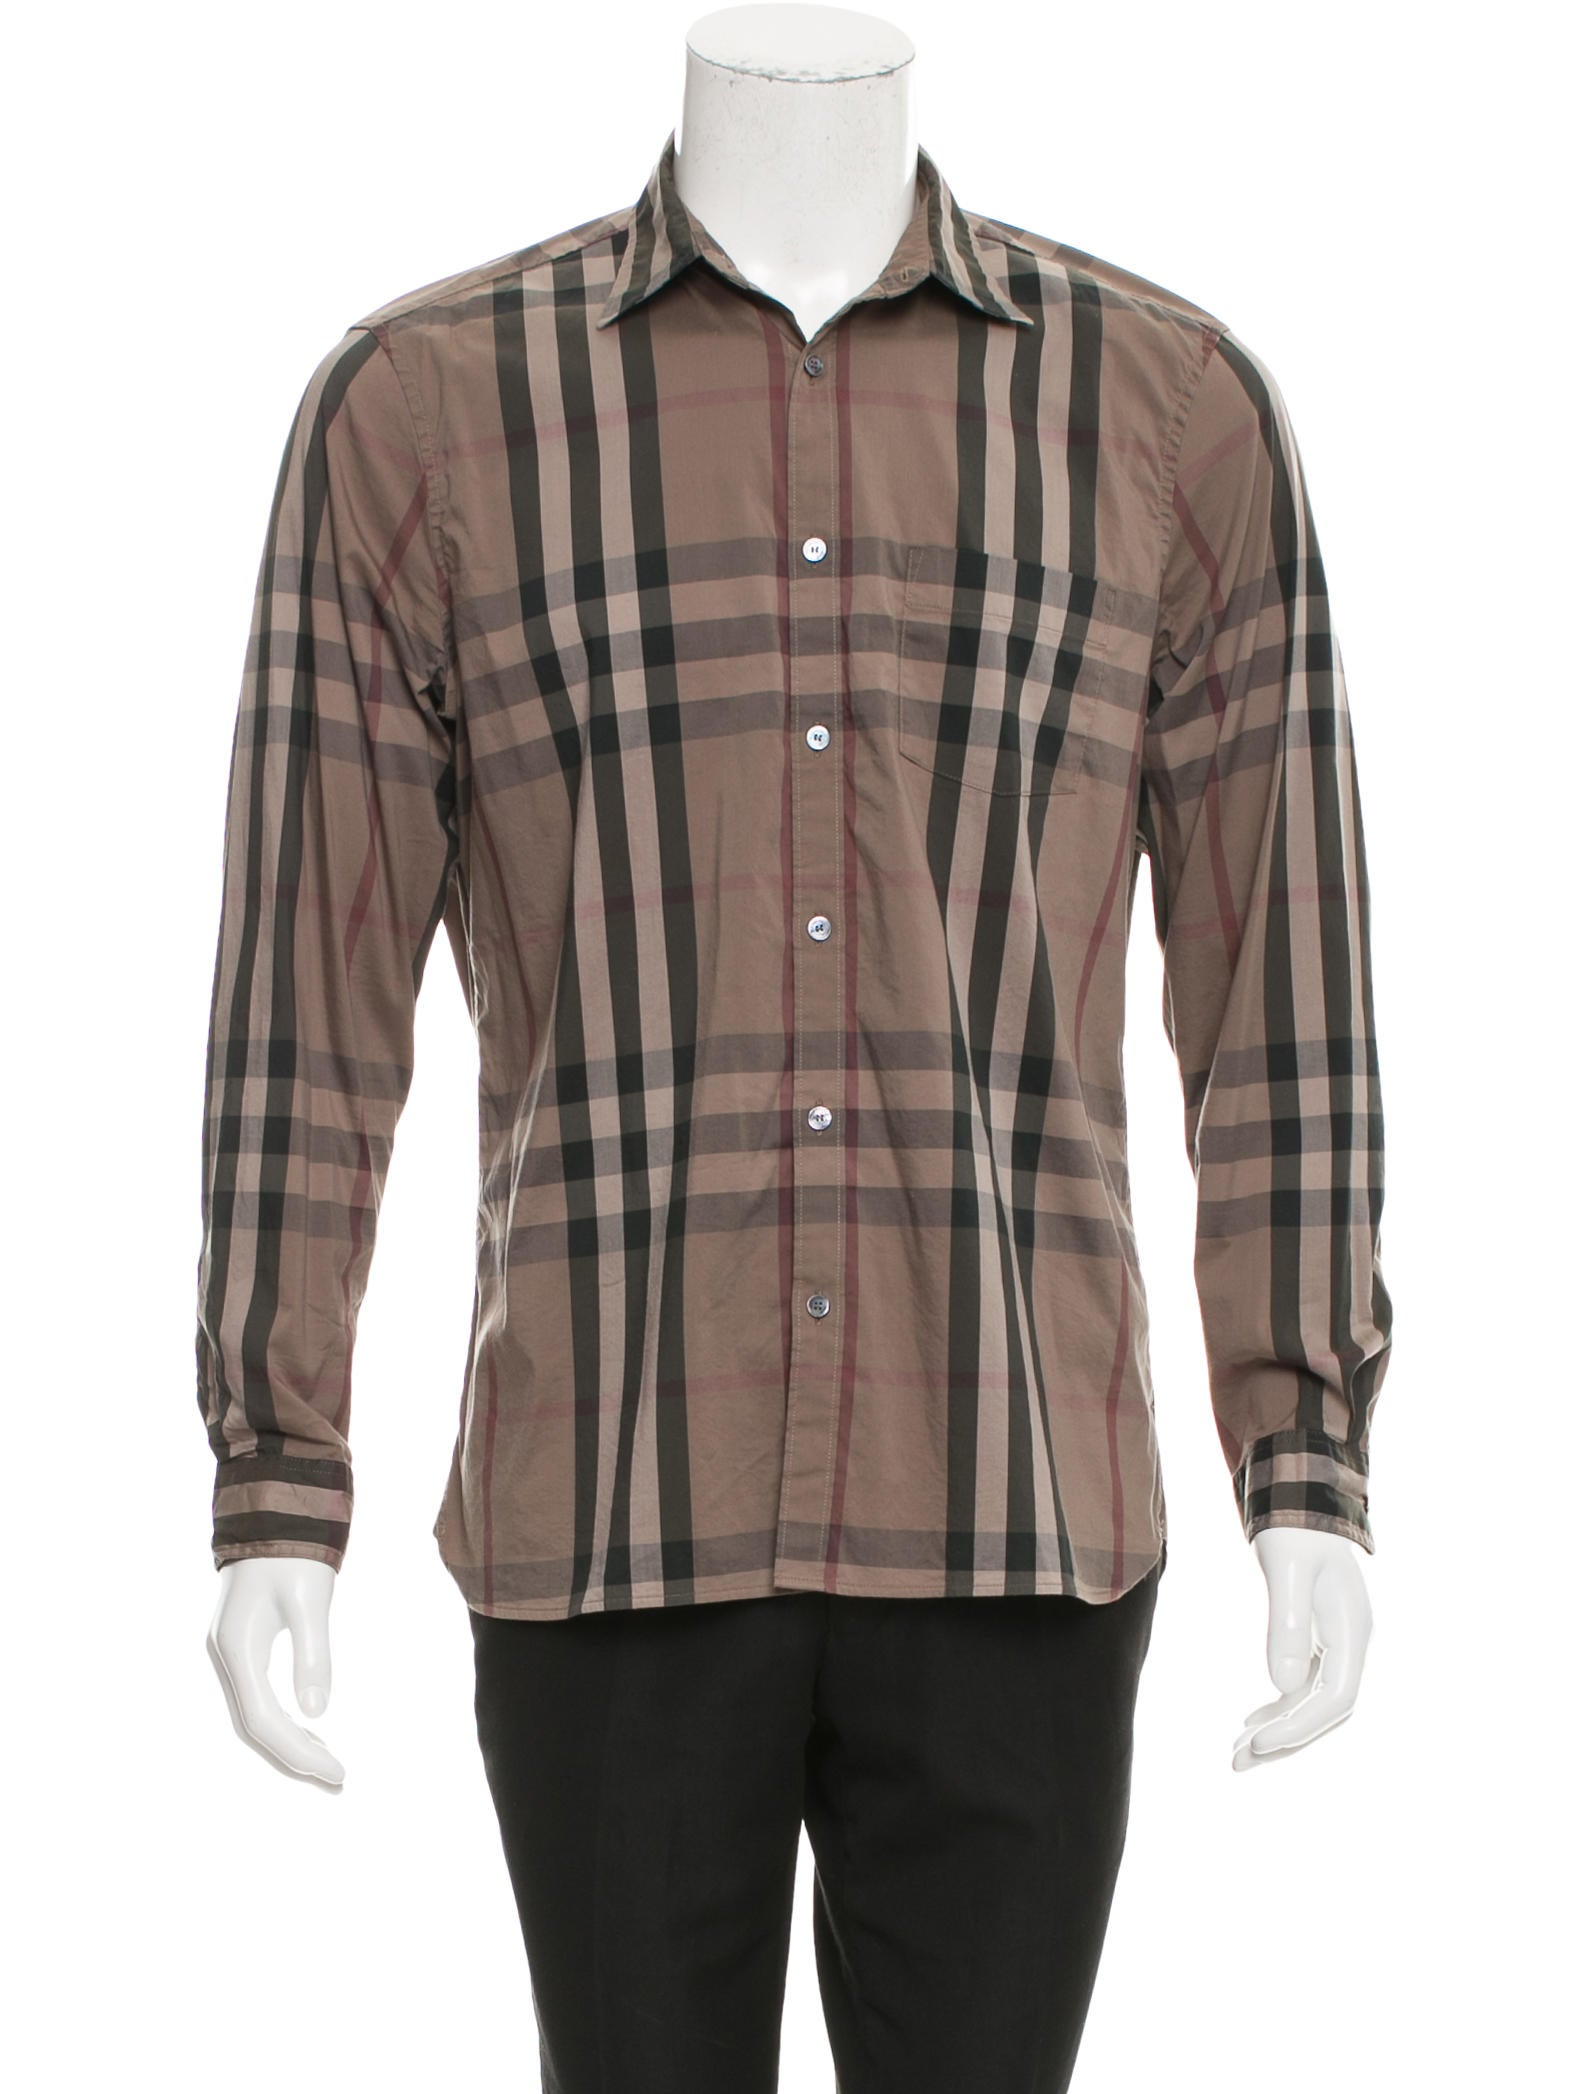 Burberry brit plaid button up shirt clothing bbr28959 for Burberry brit checked shirt